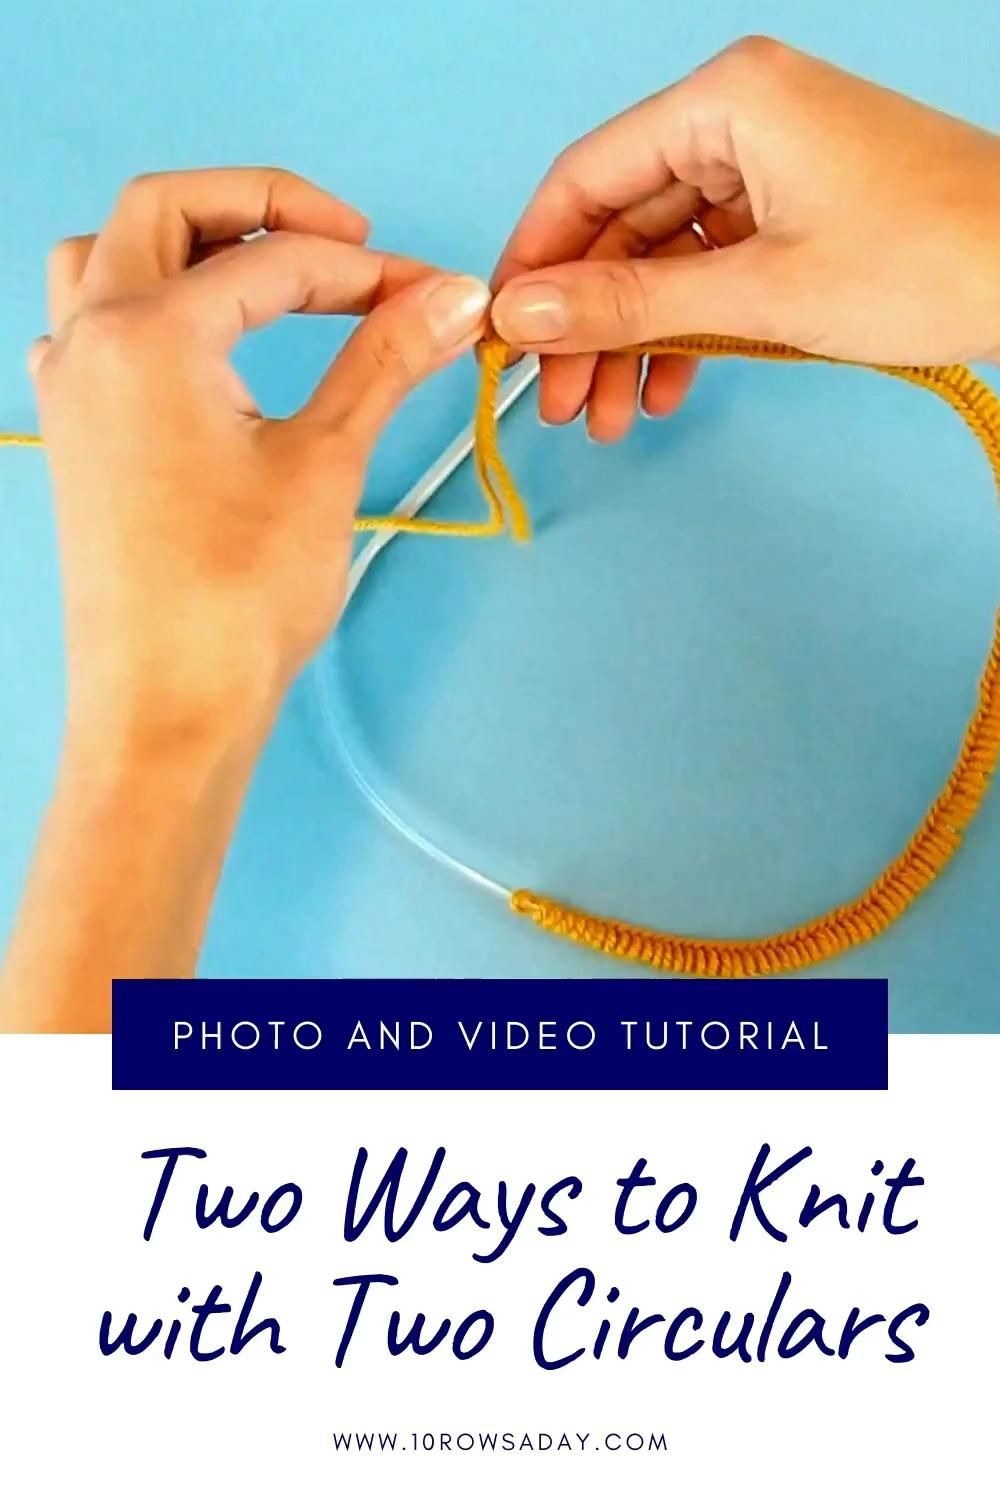 Two Ways to Knit with Two Circulars